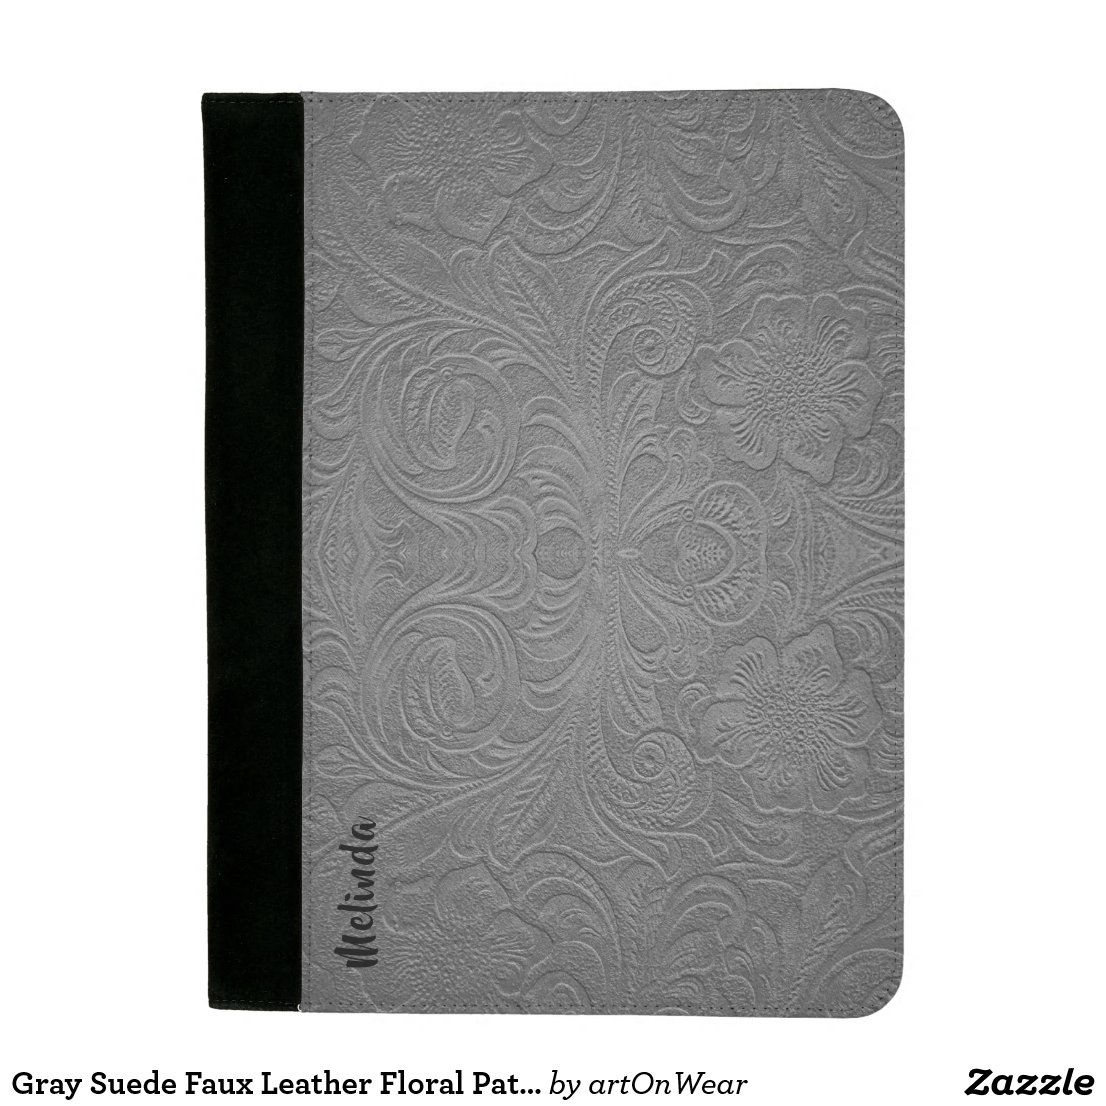 Gray Suede Faux Leather Floral Pattern